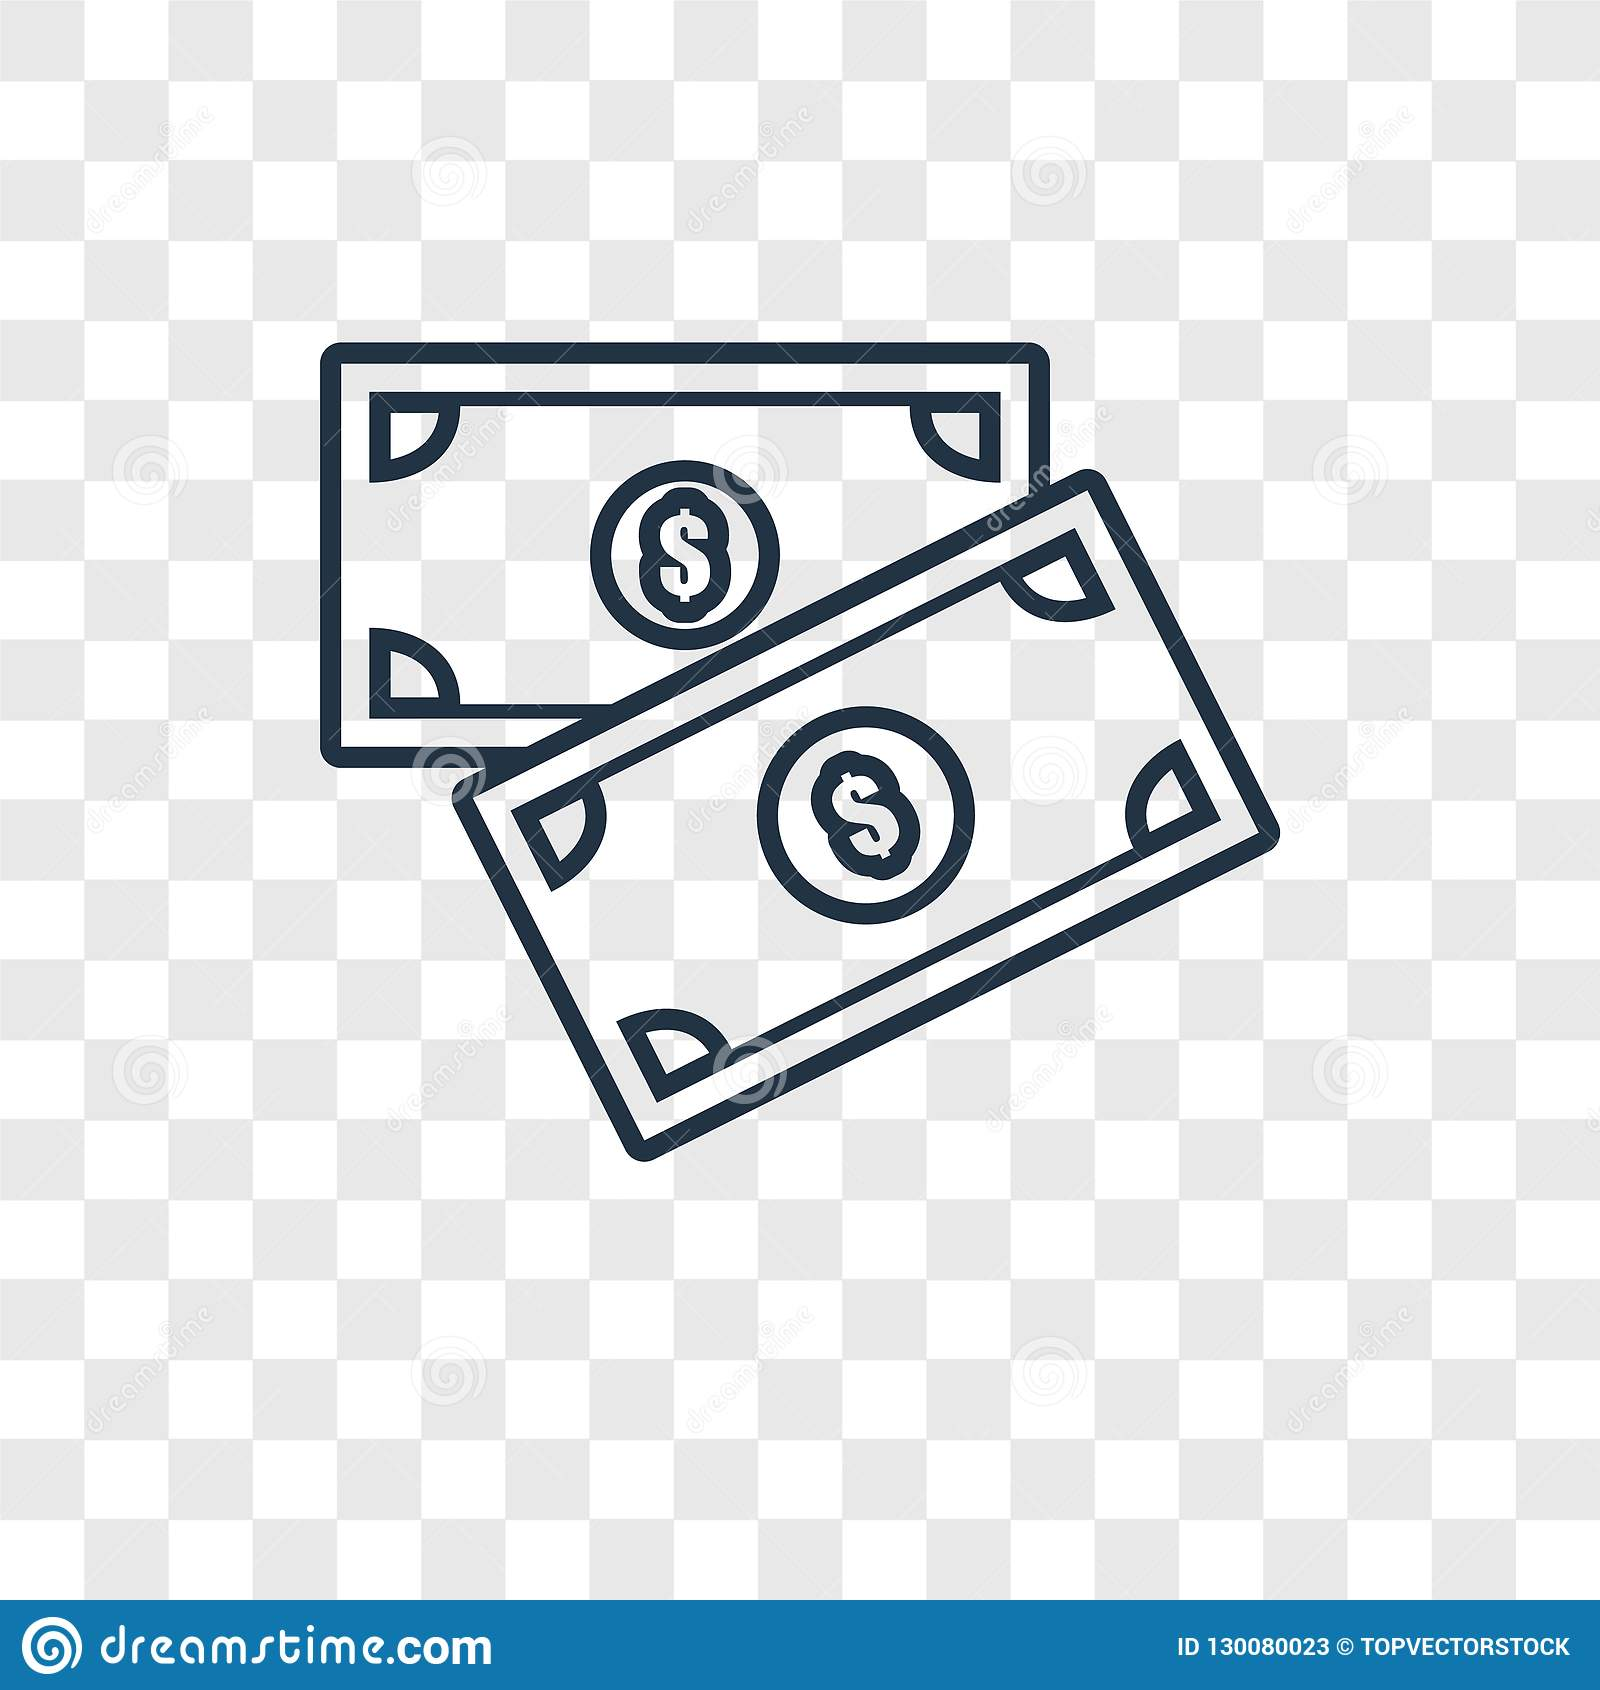 Money concept vector linear icon isolated on transparent background, Money concept transparency logo in outline style